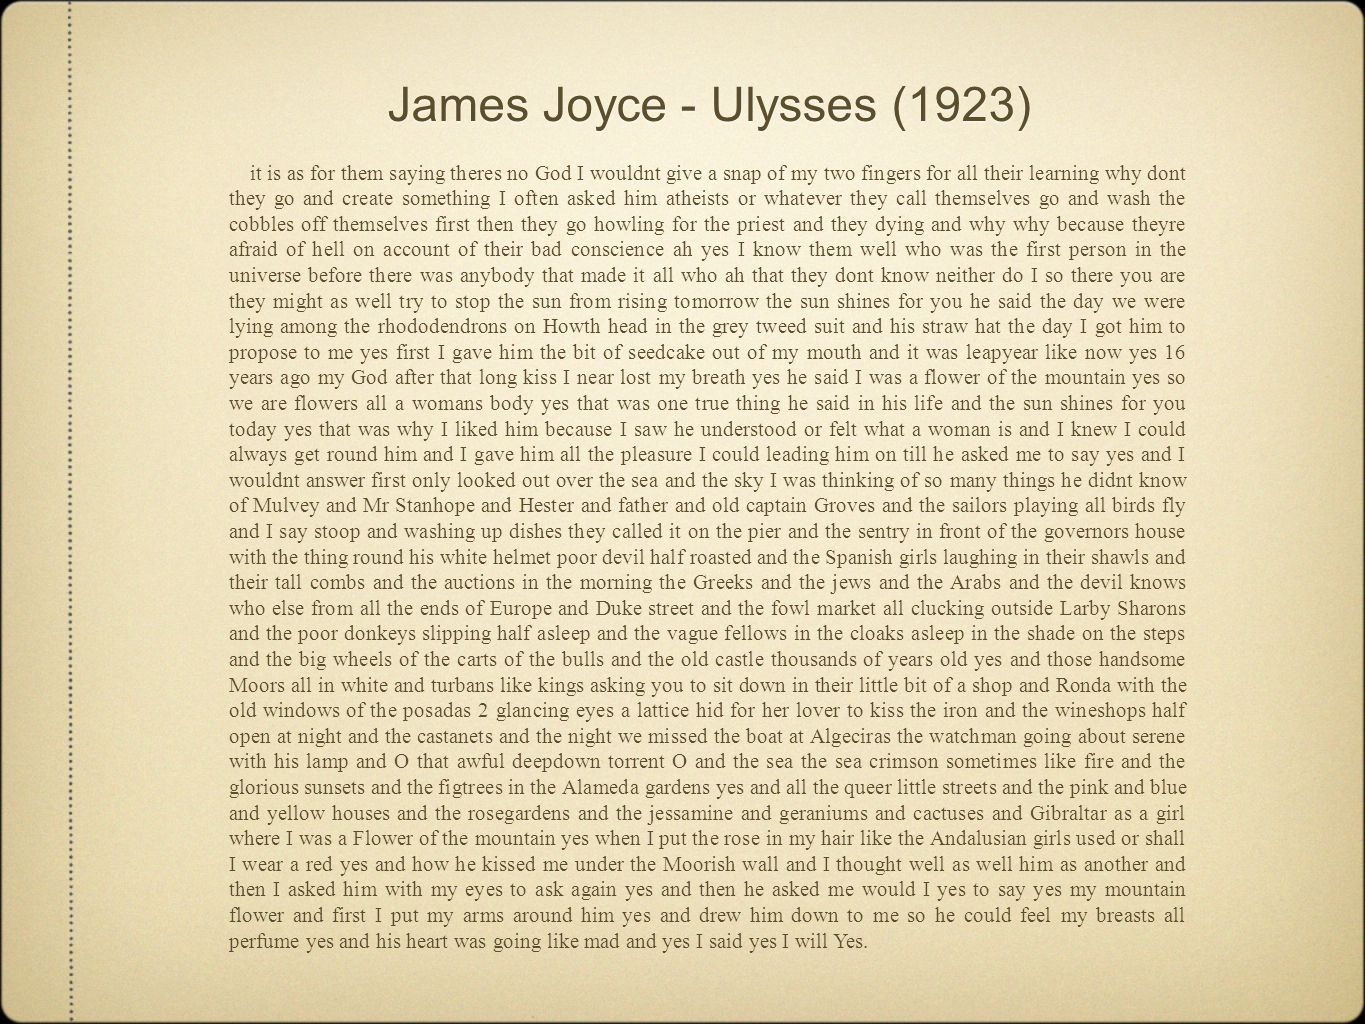 James Joyce - Ulysses (1923) it is as for them saying theres no God I wouldnt give a snap of my two fingers for all their learning why dont they go and create something I often asked him atheists or whatever they call themselves go and wash the cobbles off themselves first then they go howling for the priest and they dying and why why because theyre afraid of hell on account of their bad conscience ah yes I know them well who was the first person in the universe before there was anybody that made it all who ah that they dont know neither do I so there you are they might as well try to stop the sun from rising tomorrow the sun shines for you he said the day we were lying among the rhododendrons on Howth head in the grey tweed suit and his straw hat the day I got him to propose to me yes first I gave him the bit of seedcake out of my mouth and it was leapyear like now yes 16 years ago my God after that long kiss I near lost my breath yes he said I was a flower of the mountain yes so we are flowers all a womans body yes that was one true thing he said in his life and the sun shines for you today yes that was why I liked him because I saw he understood or felt what a woman is and I knew I could always get round him and I gave him all the pleasure I could leading him on till he asked me to say yes and I wouldnt answer first only looked out over the sea and the sky I was thinking of so many things he didnt know of Mulvey and Mr Stanhope and Hester and father and old captain Groves and the sailors playing all birds fly and I say stoop and washing up dishes they called it on the pier and the sentry in front of the governors house with the thing round his white helmet poor devil half roasted and the Spanish girls laughing in their shawls and their tall combs and the auctions in the morning the Greeks and the jews and the Arabs and the devil knows who else from all the ends of Europe and Duke street and the fowl market all clucking outside Larby Sharons and the poor donkeys slipping half asleep and the vague fellows in the cloaks asleep in the shade on the steps and the big wheels of the carts of the bulls and the old castle thousands of years old yes and those handsome Moors all in white and turbans like kings asking you to sit down in their little bit of a shop and Ronda with the old windows of the posadas 2 glancing eyes a lattice hid for her lover to kiss the iron and the wineshops half open at night and the castanets and the night we missed the boat at Algeciras the watchman going about serene with his lamp and O that awful deepdown torrent O and the sea the sea crimson sometimes like fire and the glorious sunsets and the figtrees in the Alameda gardens yes and all the queer little streets and the pink and blue and yellow houses and the rosegardens and the jessamine and geraniums and cactuses and Gibraltar as a girl where I was a Flower of the mountain yes when I put the rose in my hair like the Andalusian girls used or shall I wear a red yes and how he kissed me under the Moorish wall and I thought well as well him as another and then I asked him with my eyes to ask again yes and then he asked me would I yes to say yes my mountain flower and first I put my arms around him yes and drew him down to me so he could feel my breasts all perfume yes and his heart was going like mad and yes I said yes I will Yes.